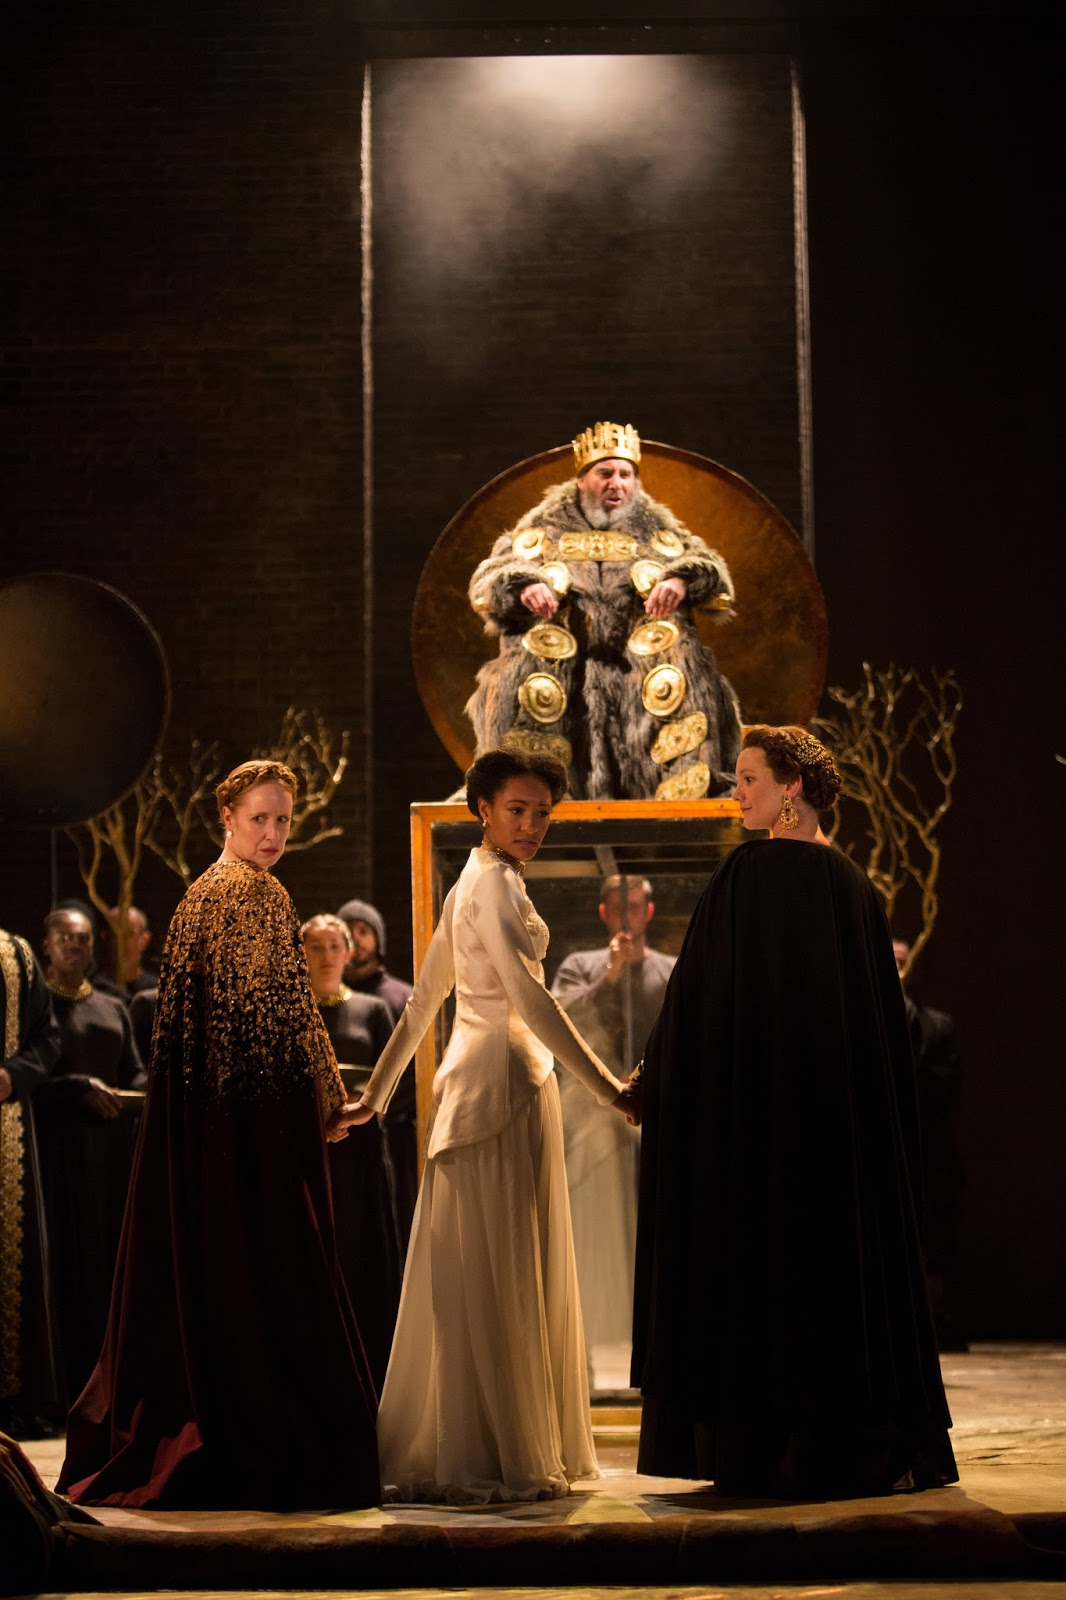 a review of the play king lear by william shakespeare King lear summary provides a quick and easy overview of king lear's plot  describing every major event in this play.